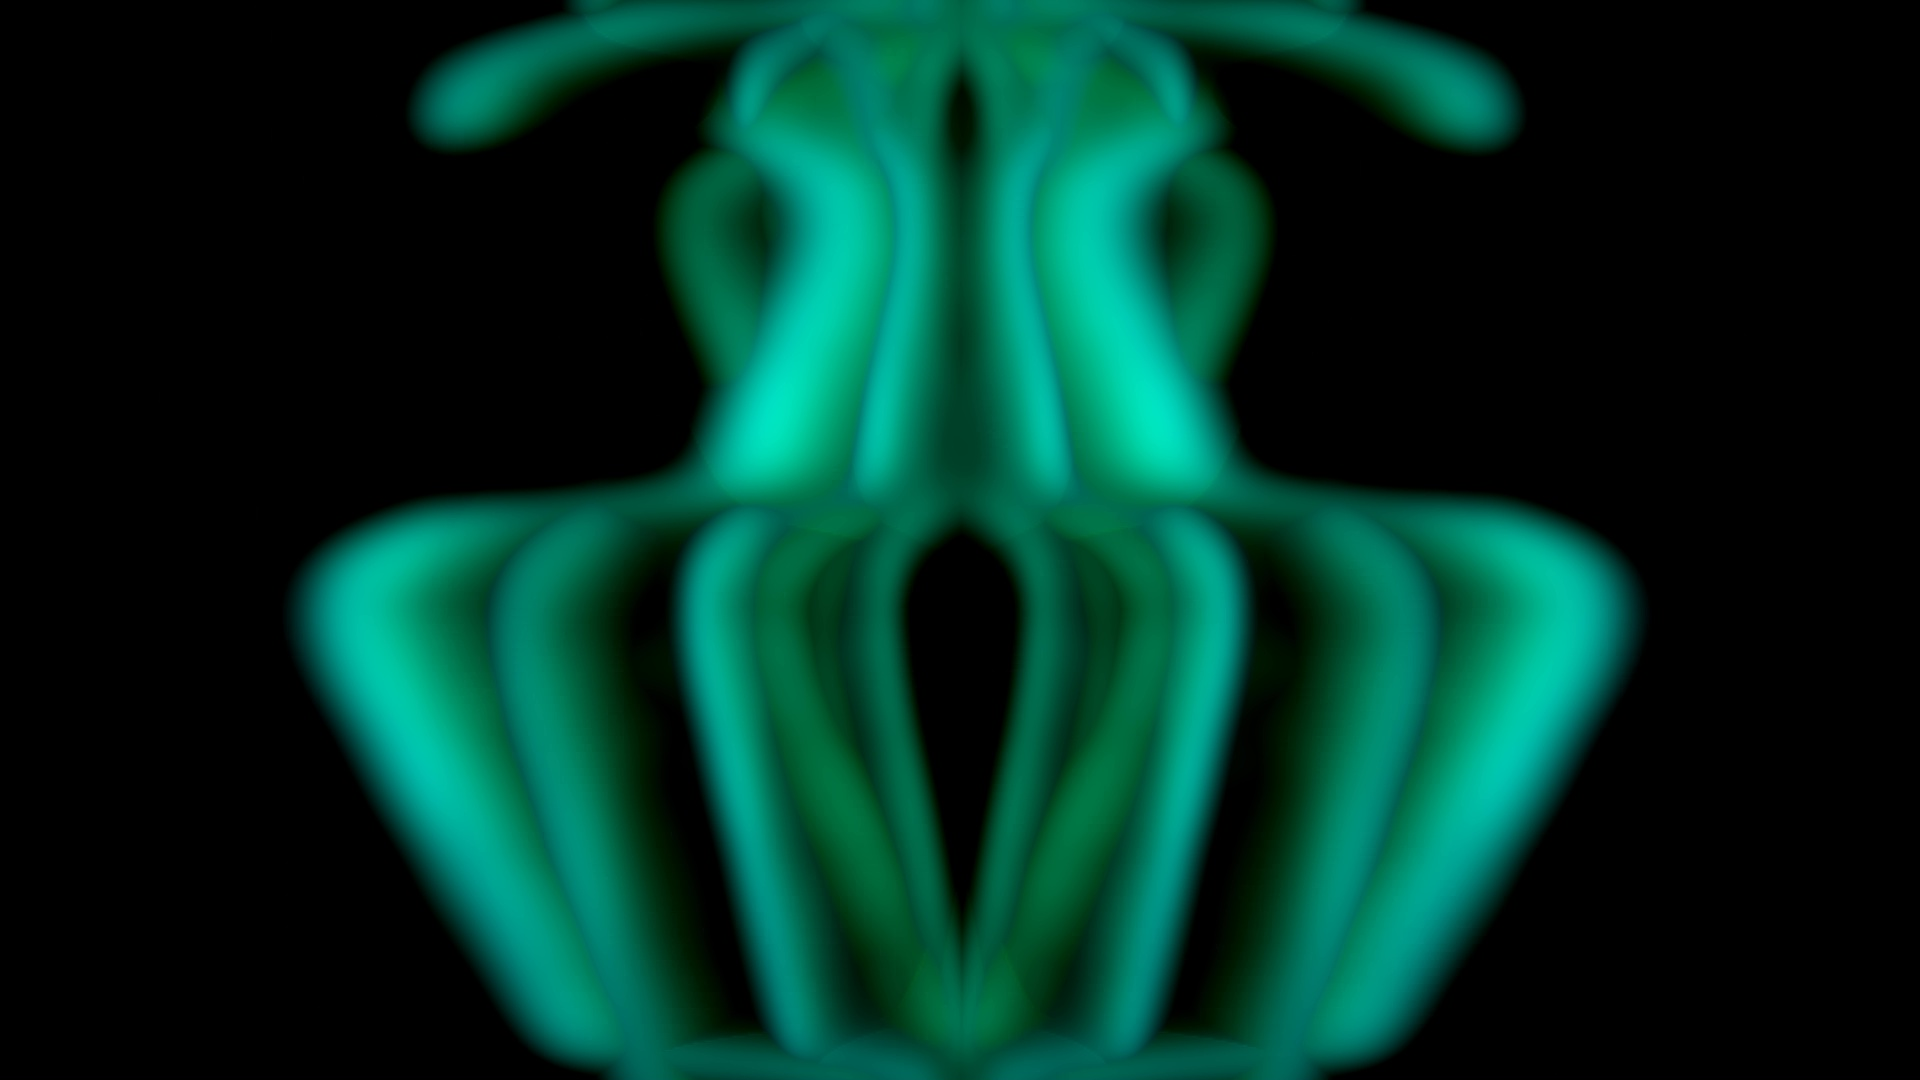 Sorrow - Green Lines Centered 2